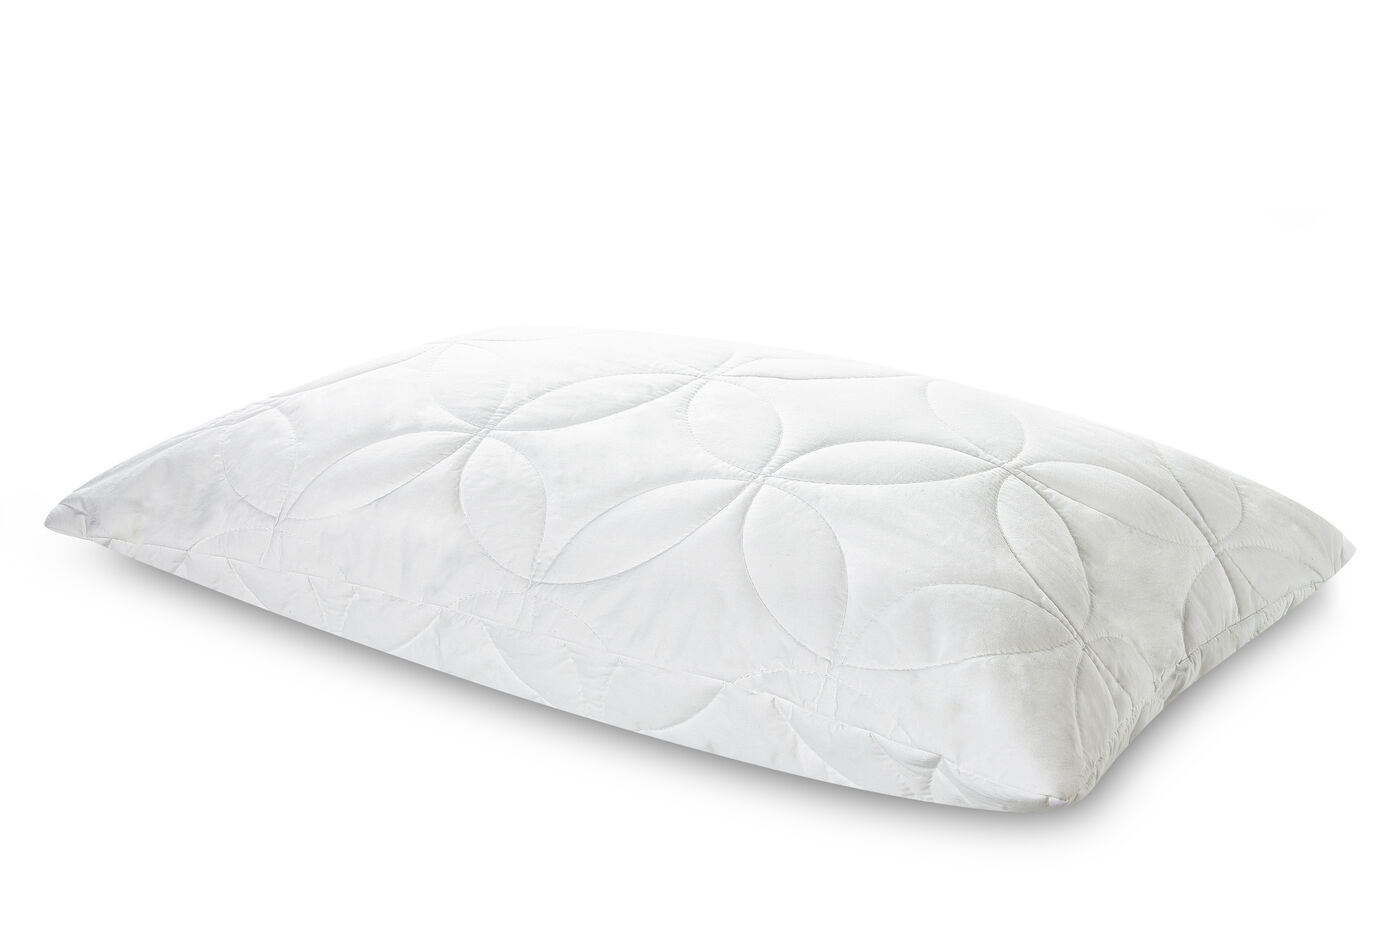 Tempur Pedic Traditional Pillow Soft : Tempur-Pedic TEMPUR-Cloud Soft/Lofty Pillow Mathis Brothers Furniture